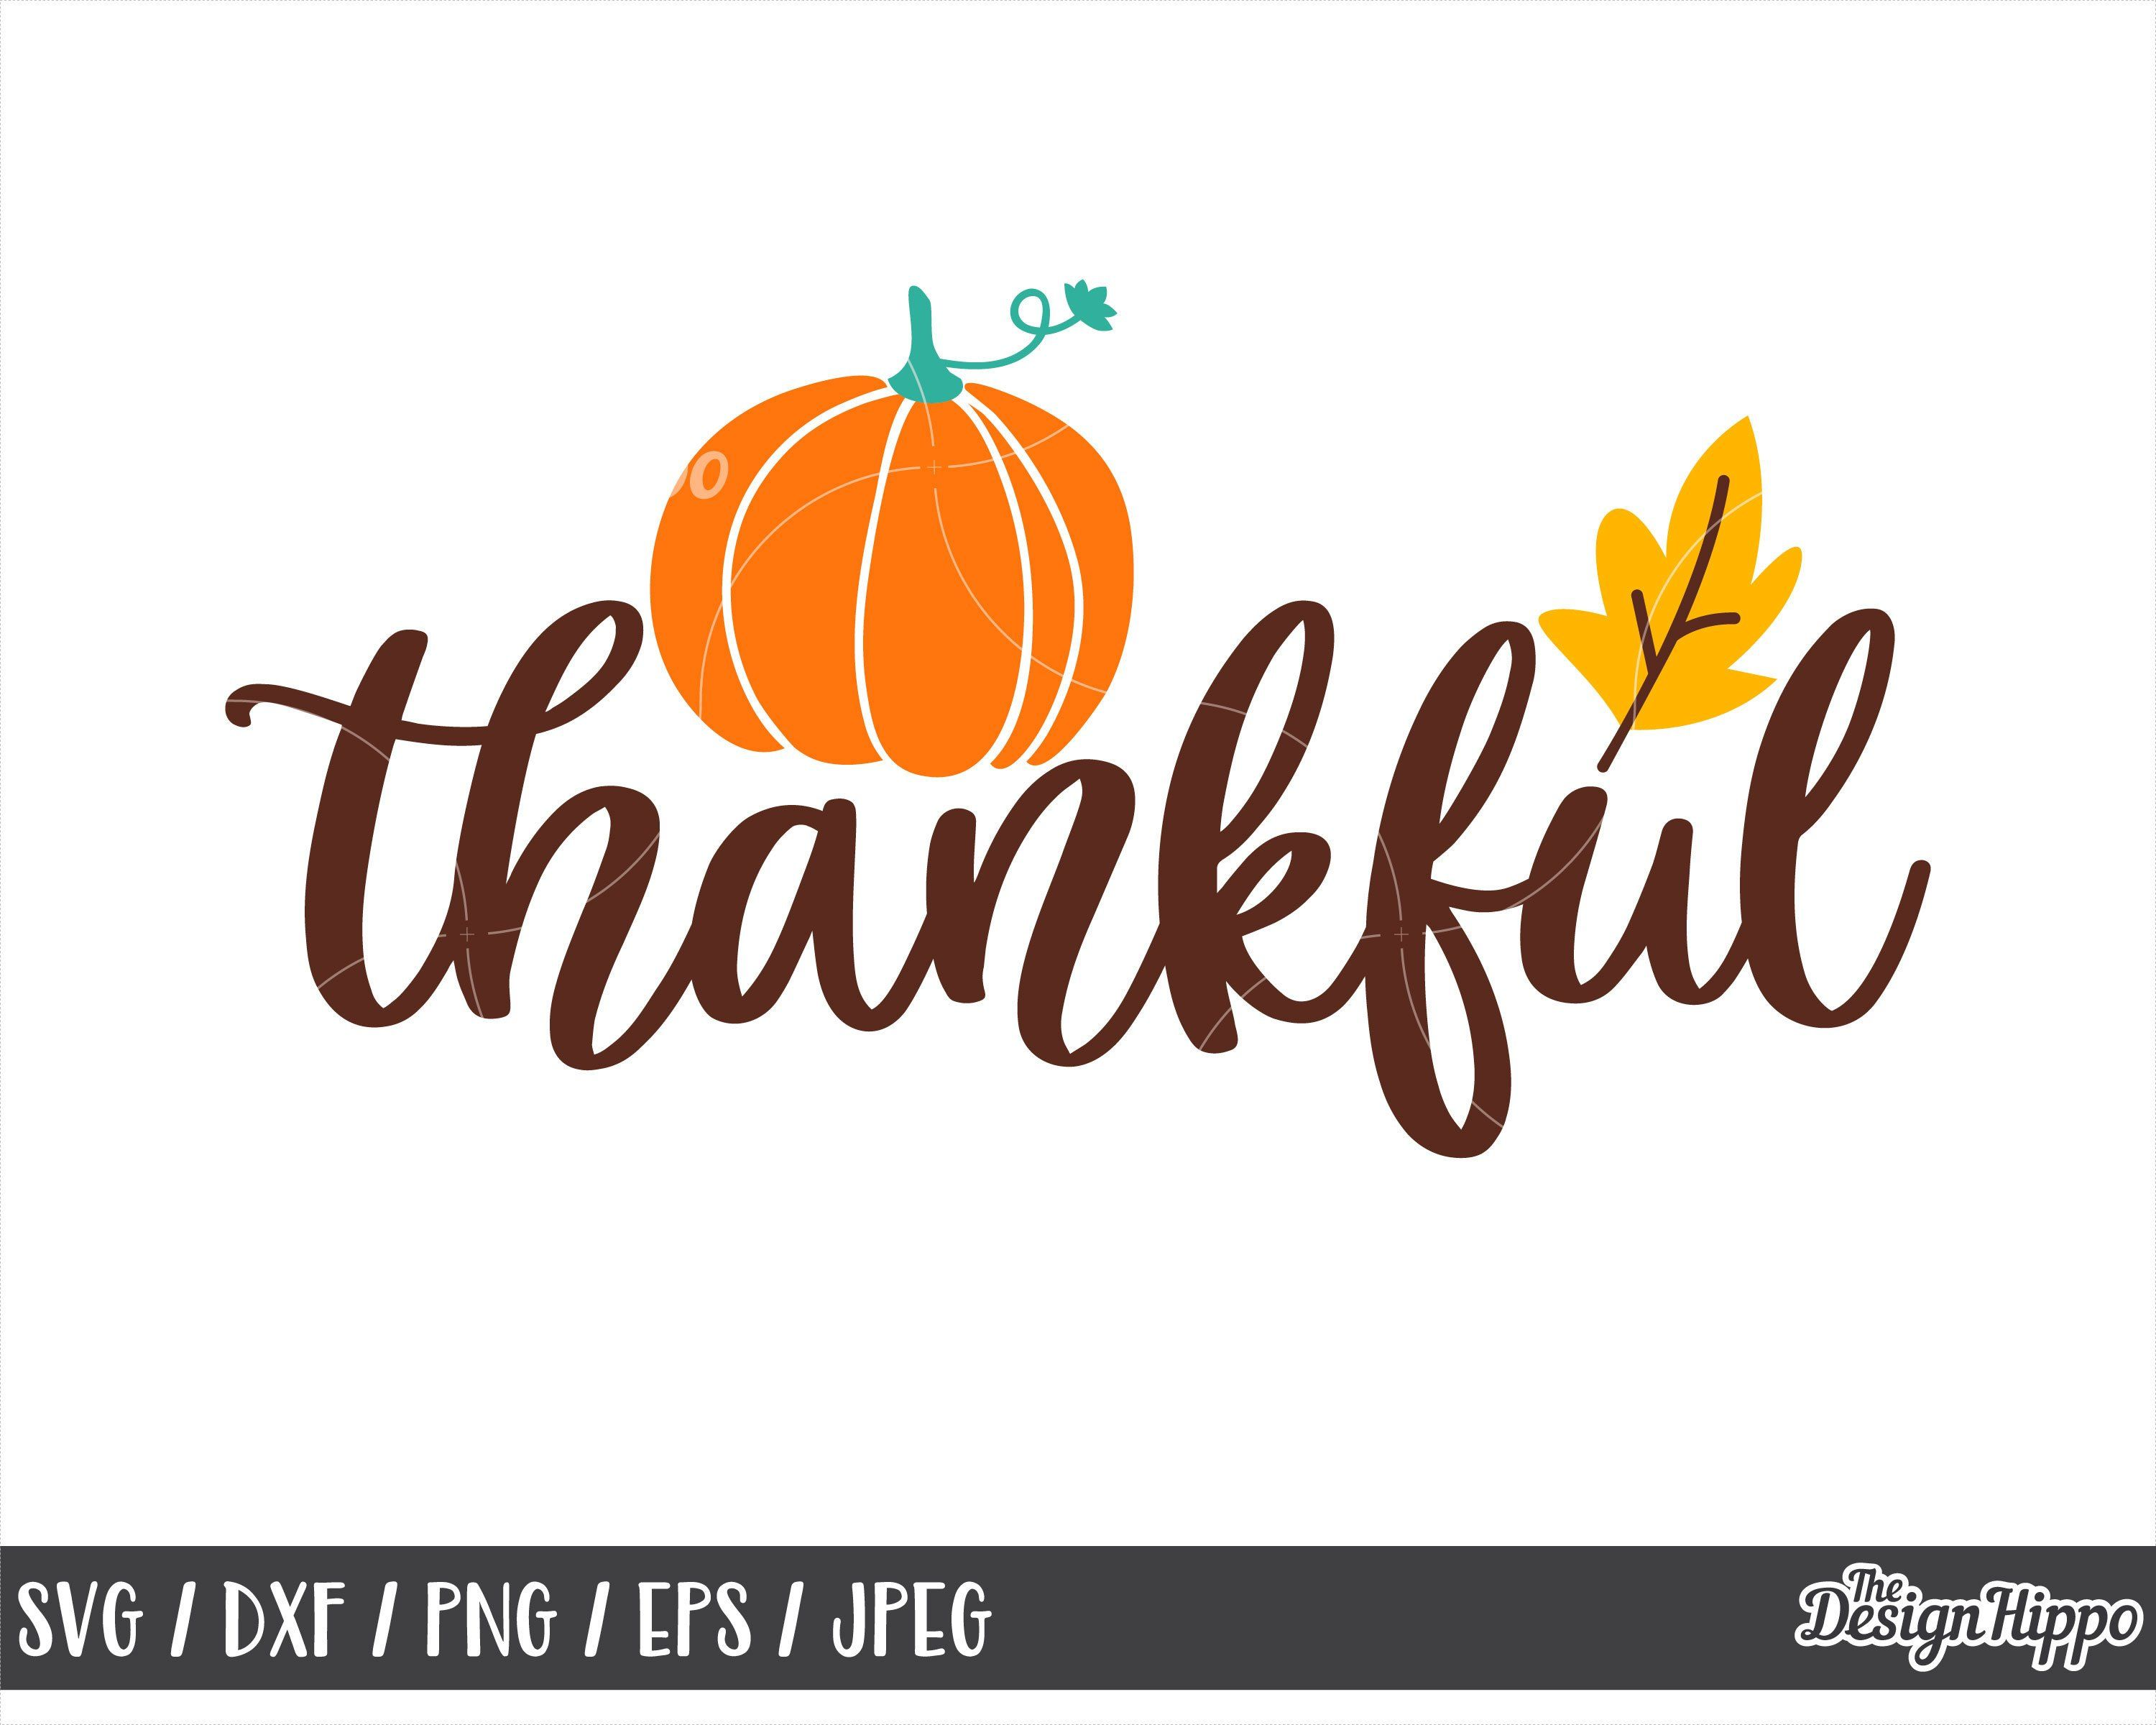 Give Thanks Sublimation Png Design Fall Foliage Hand Drawn Etsy How To Draw Hands Art File Give Thanks